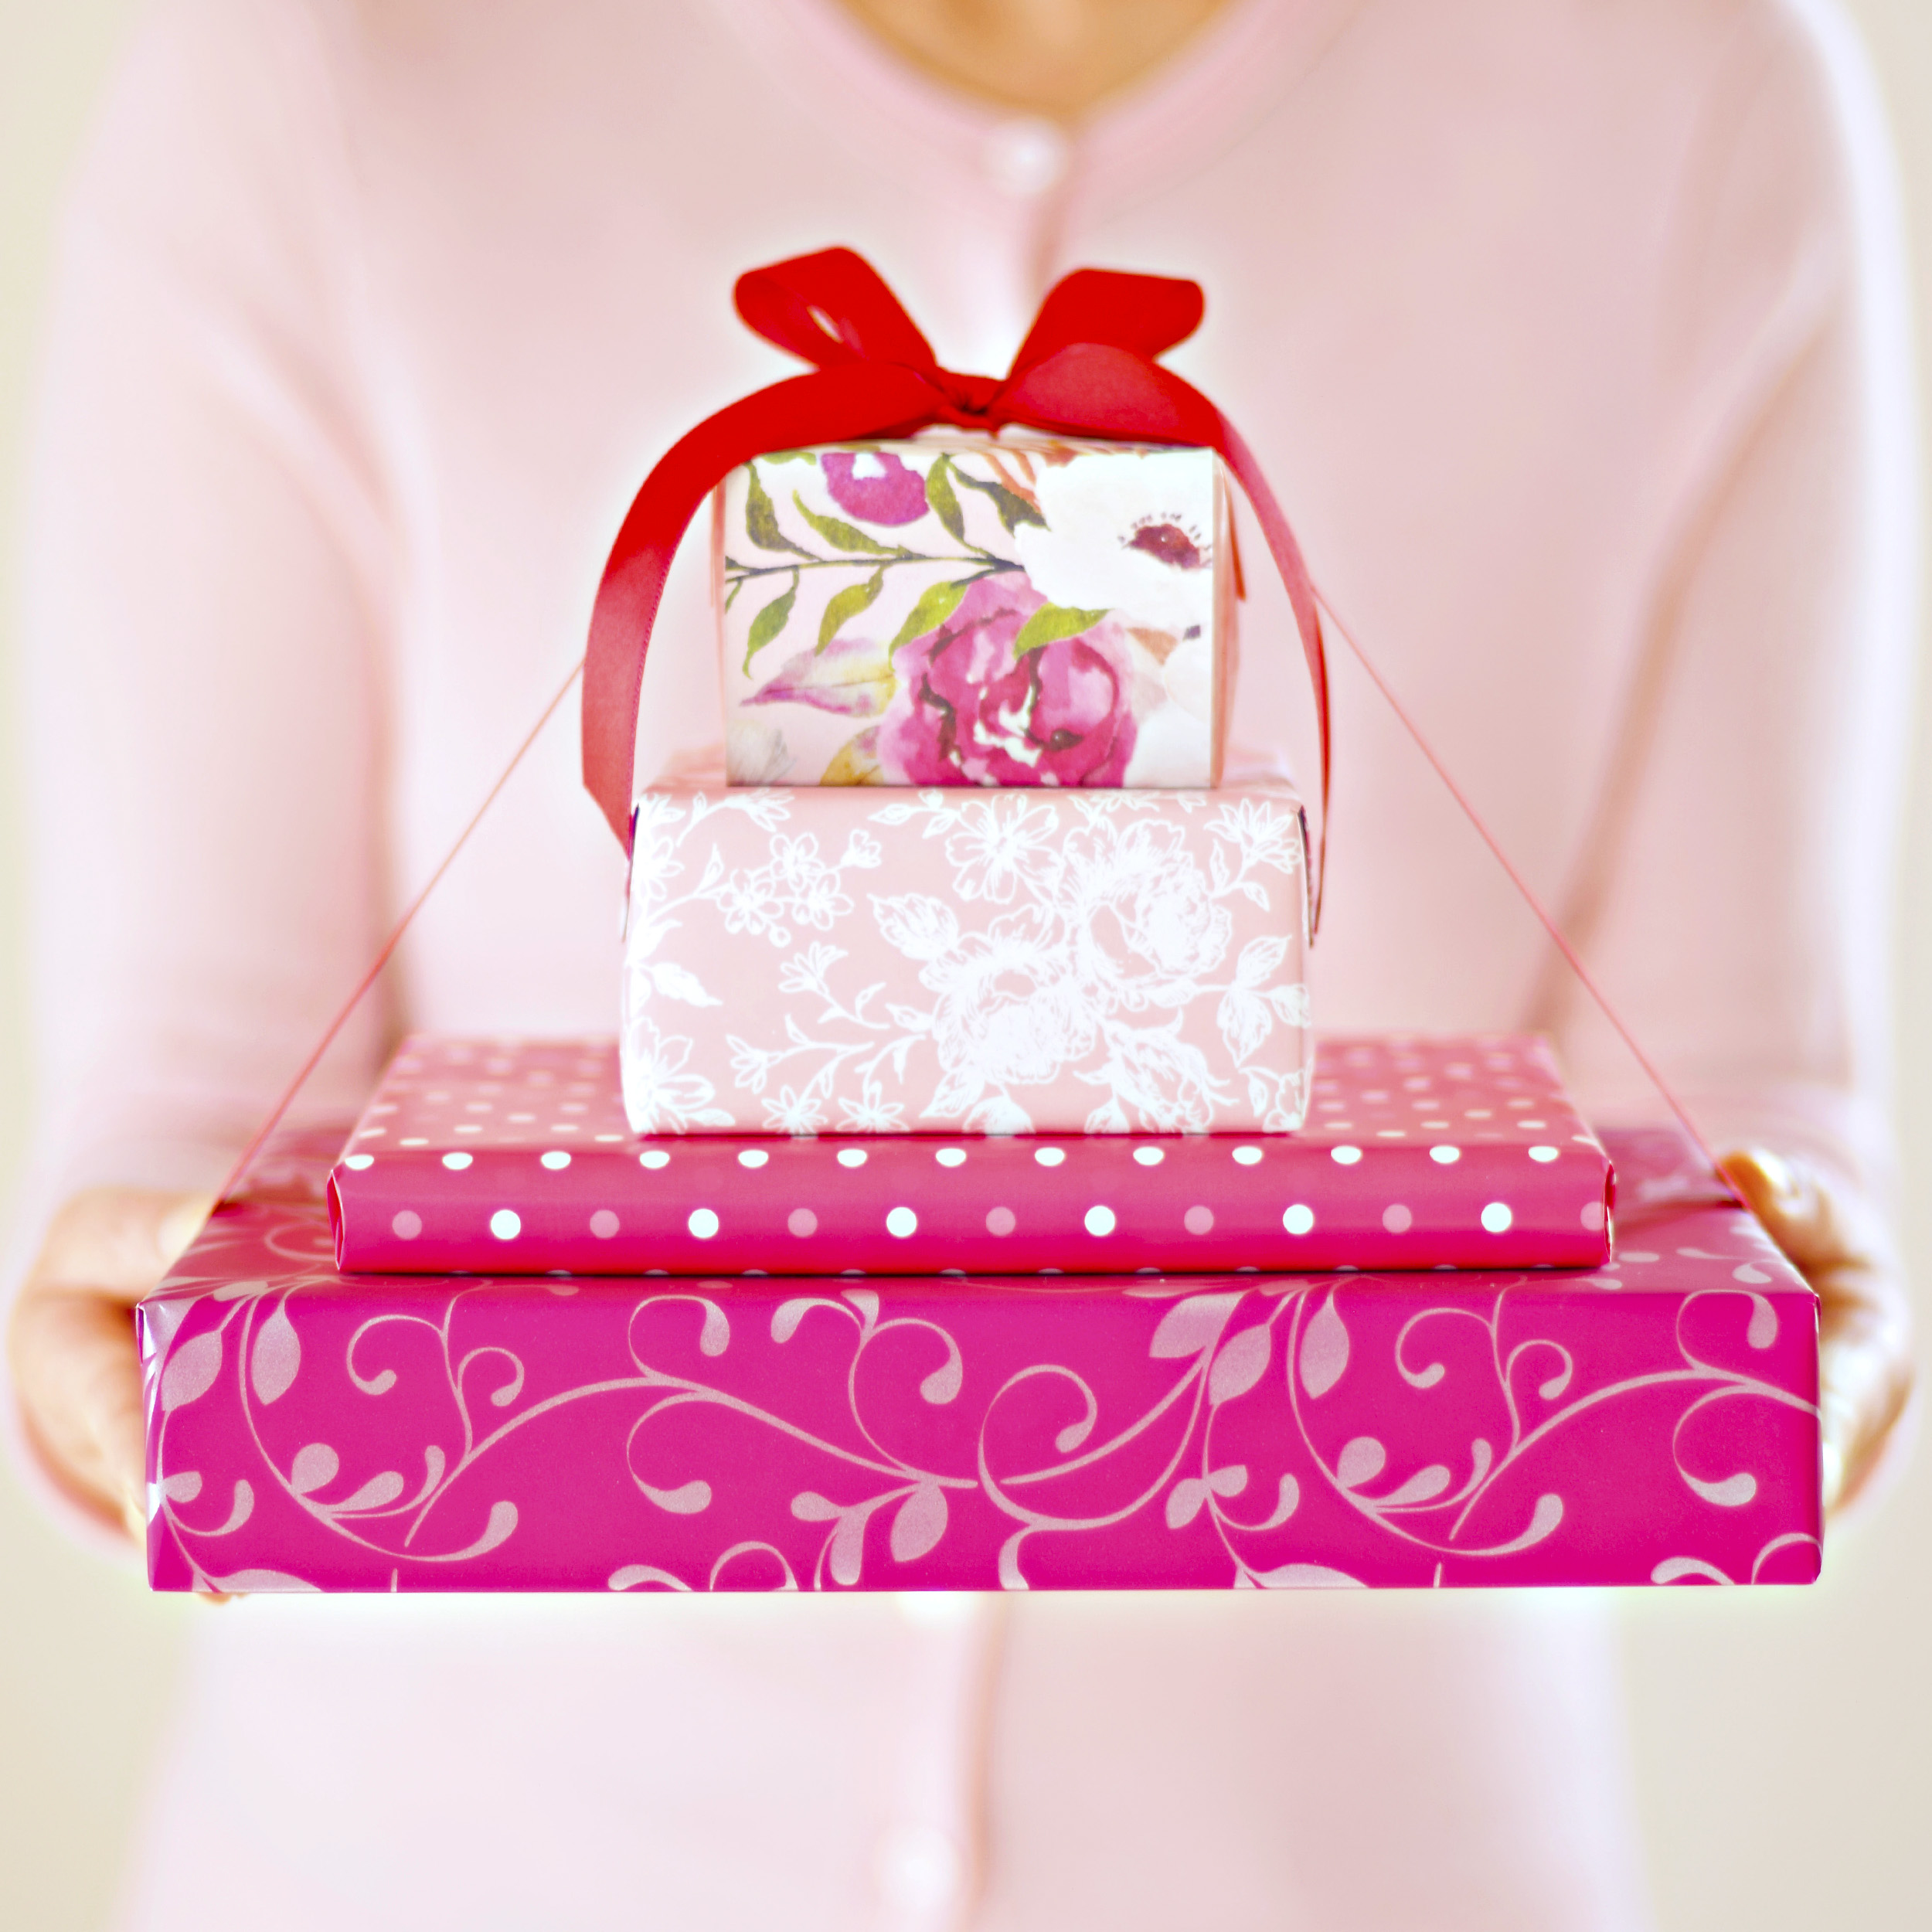 A person offering stacked gift boxes tied with red ribbon and held in both hands.